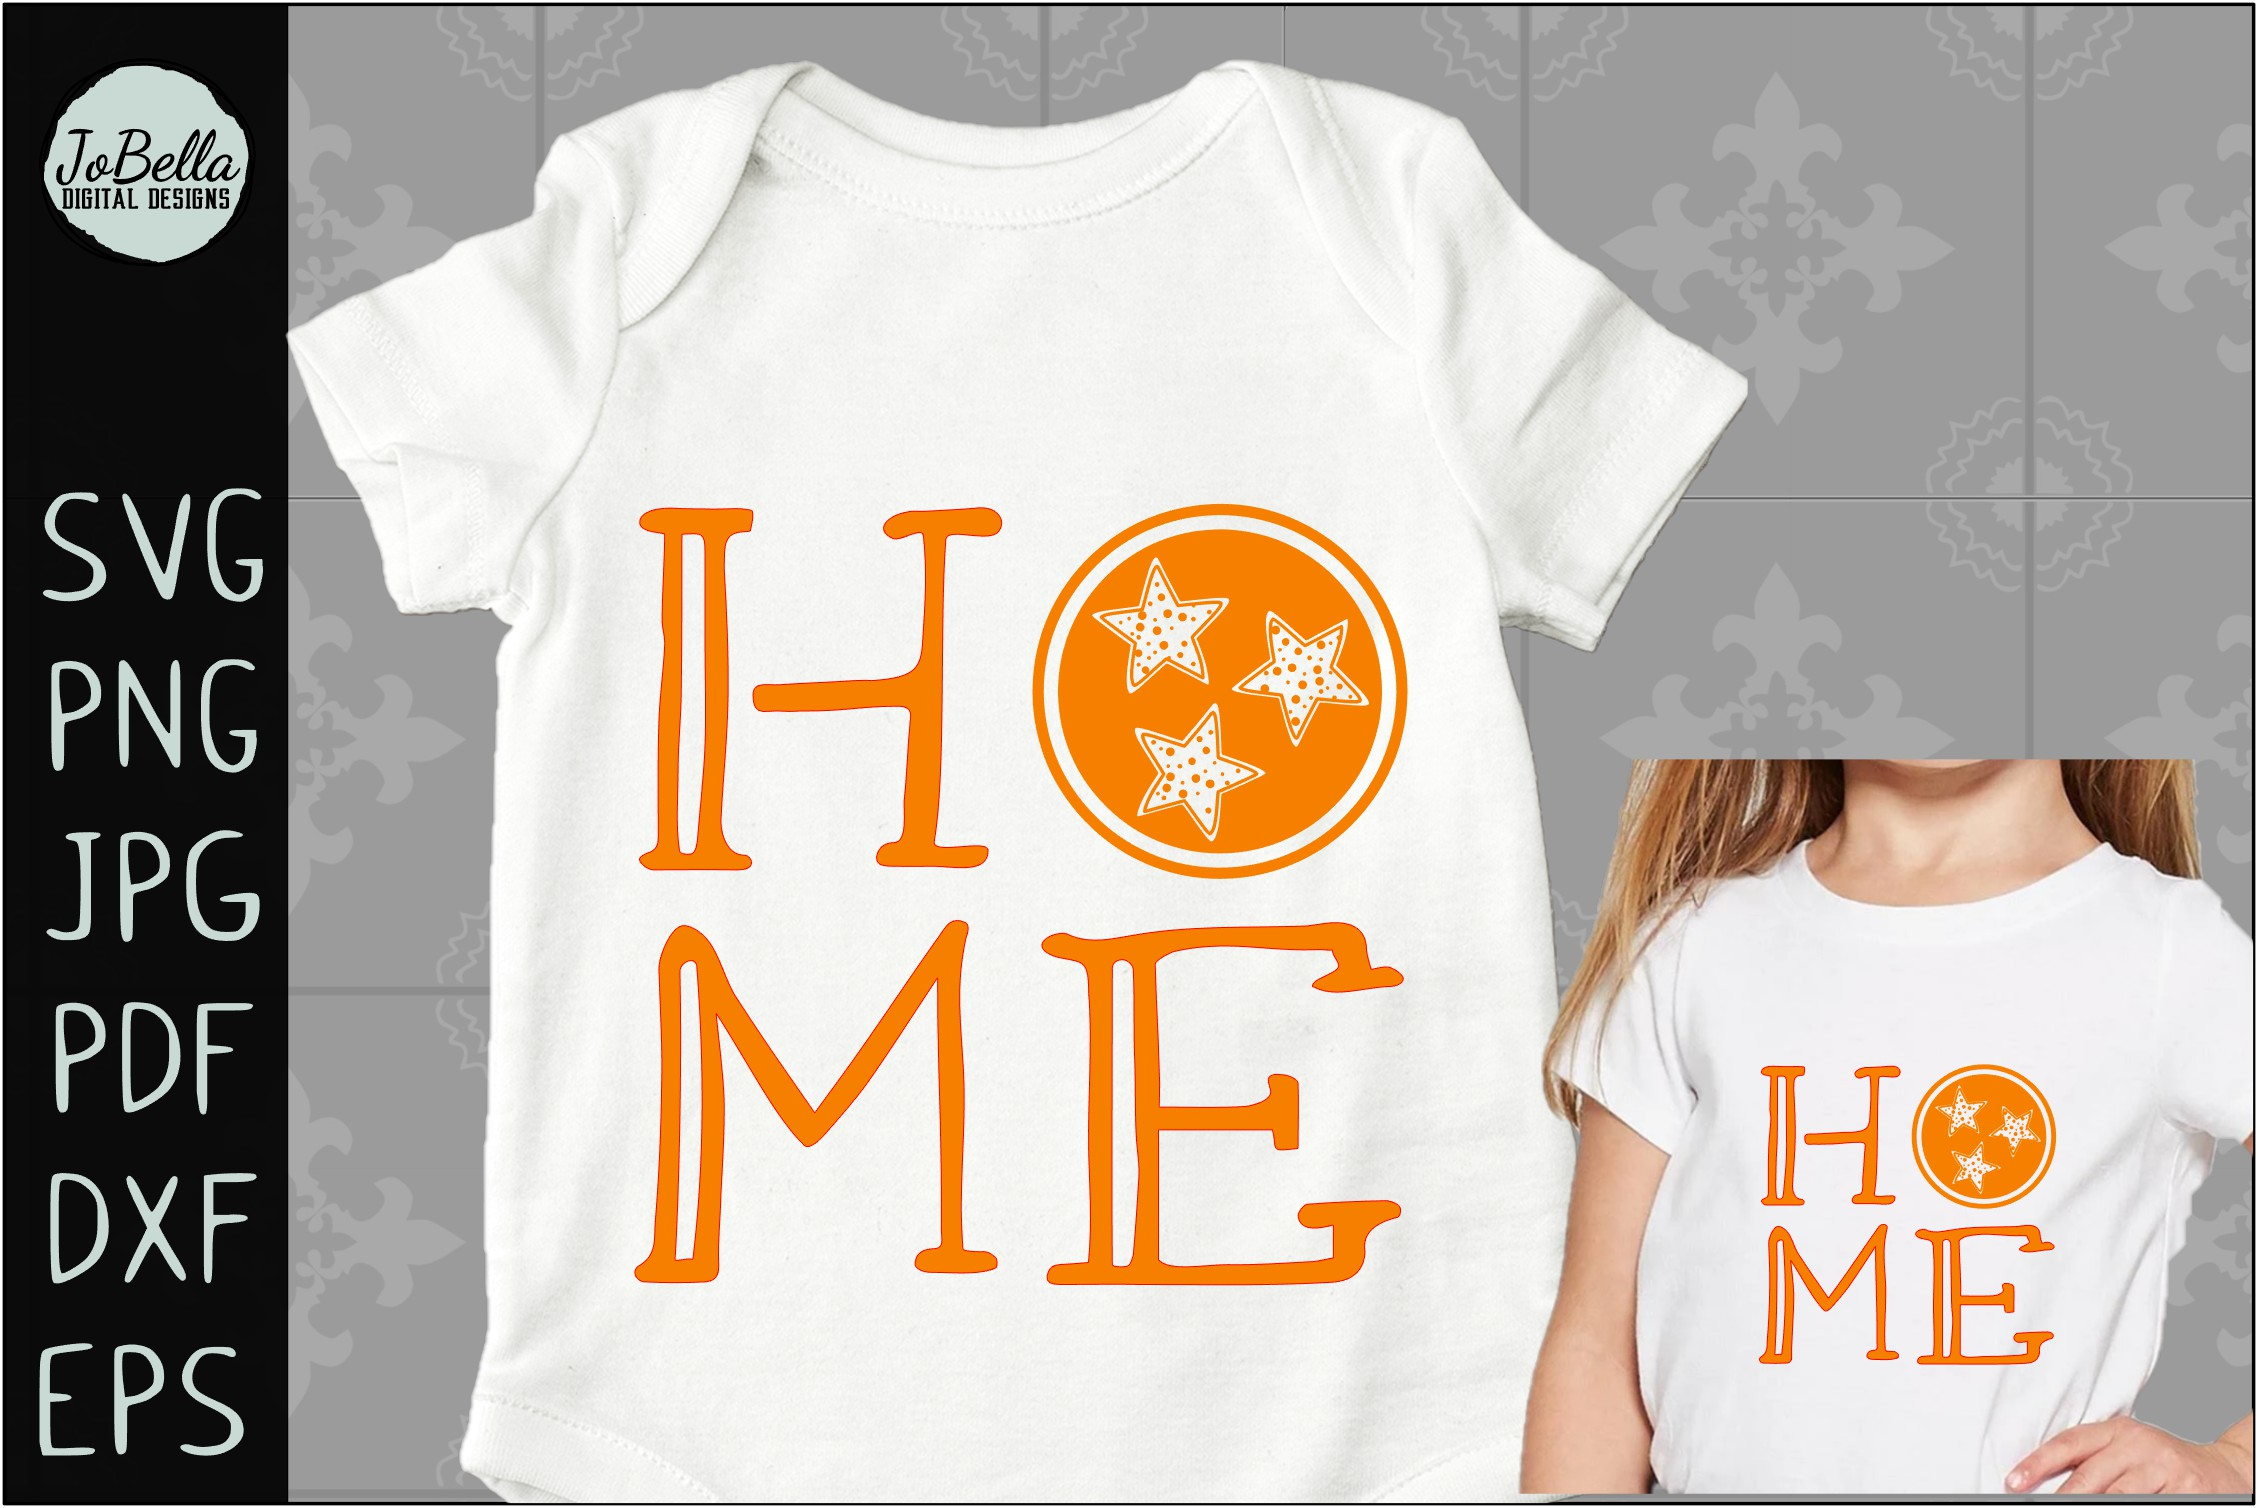 Home with Polka Dot TriStar SVG, Sublimation PNG & Printable example image 2